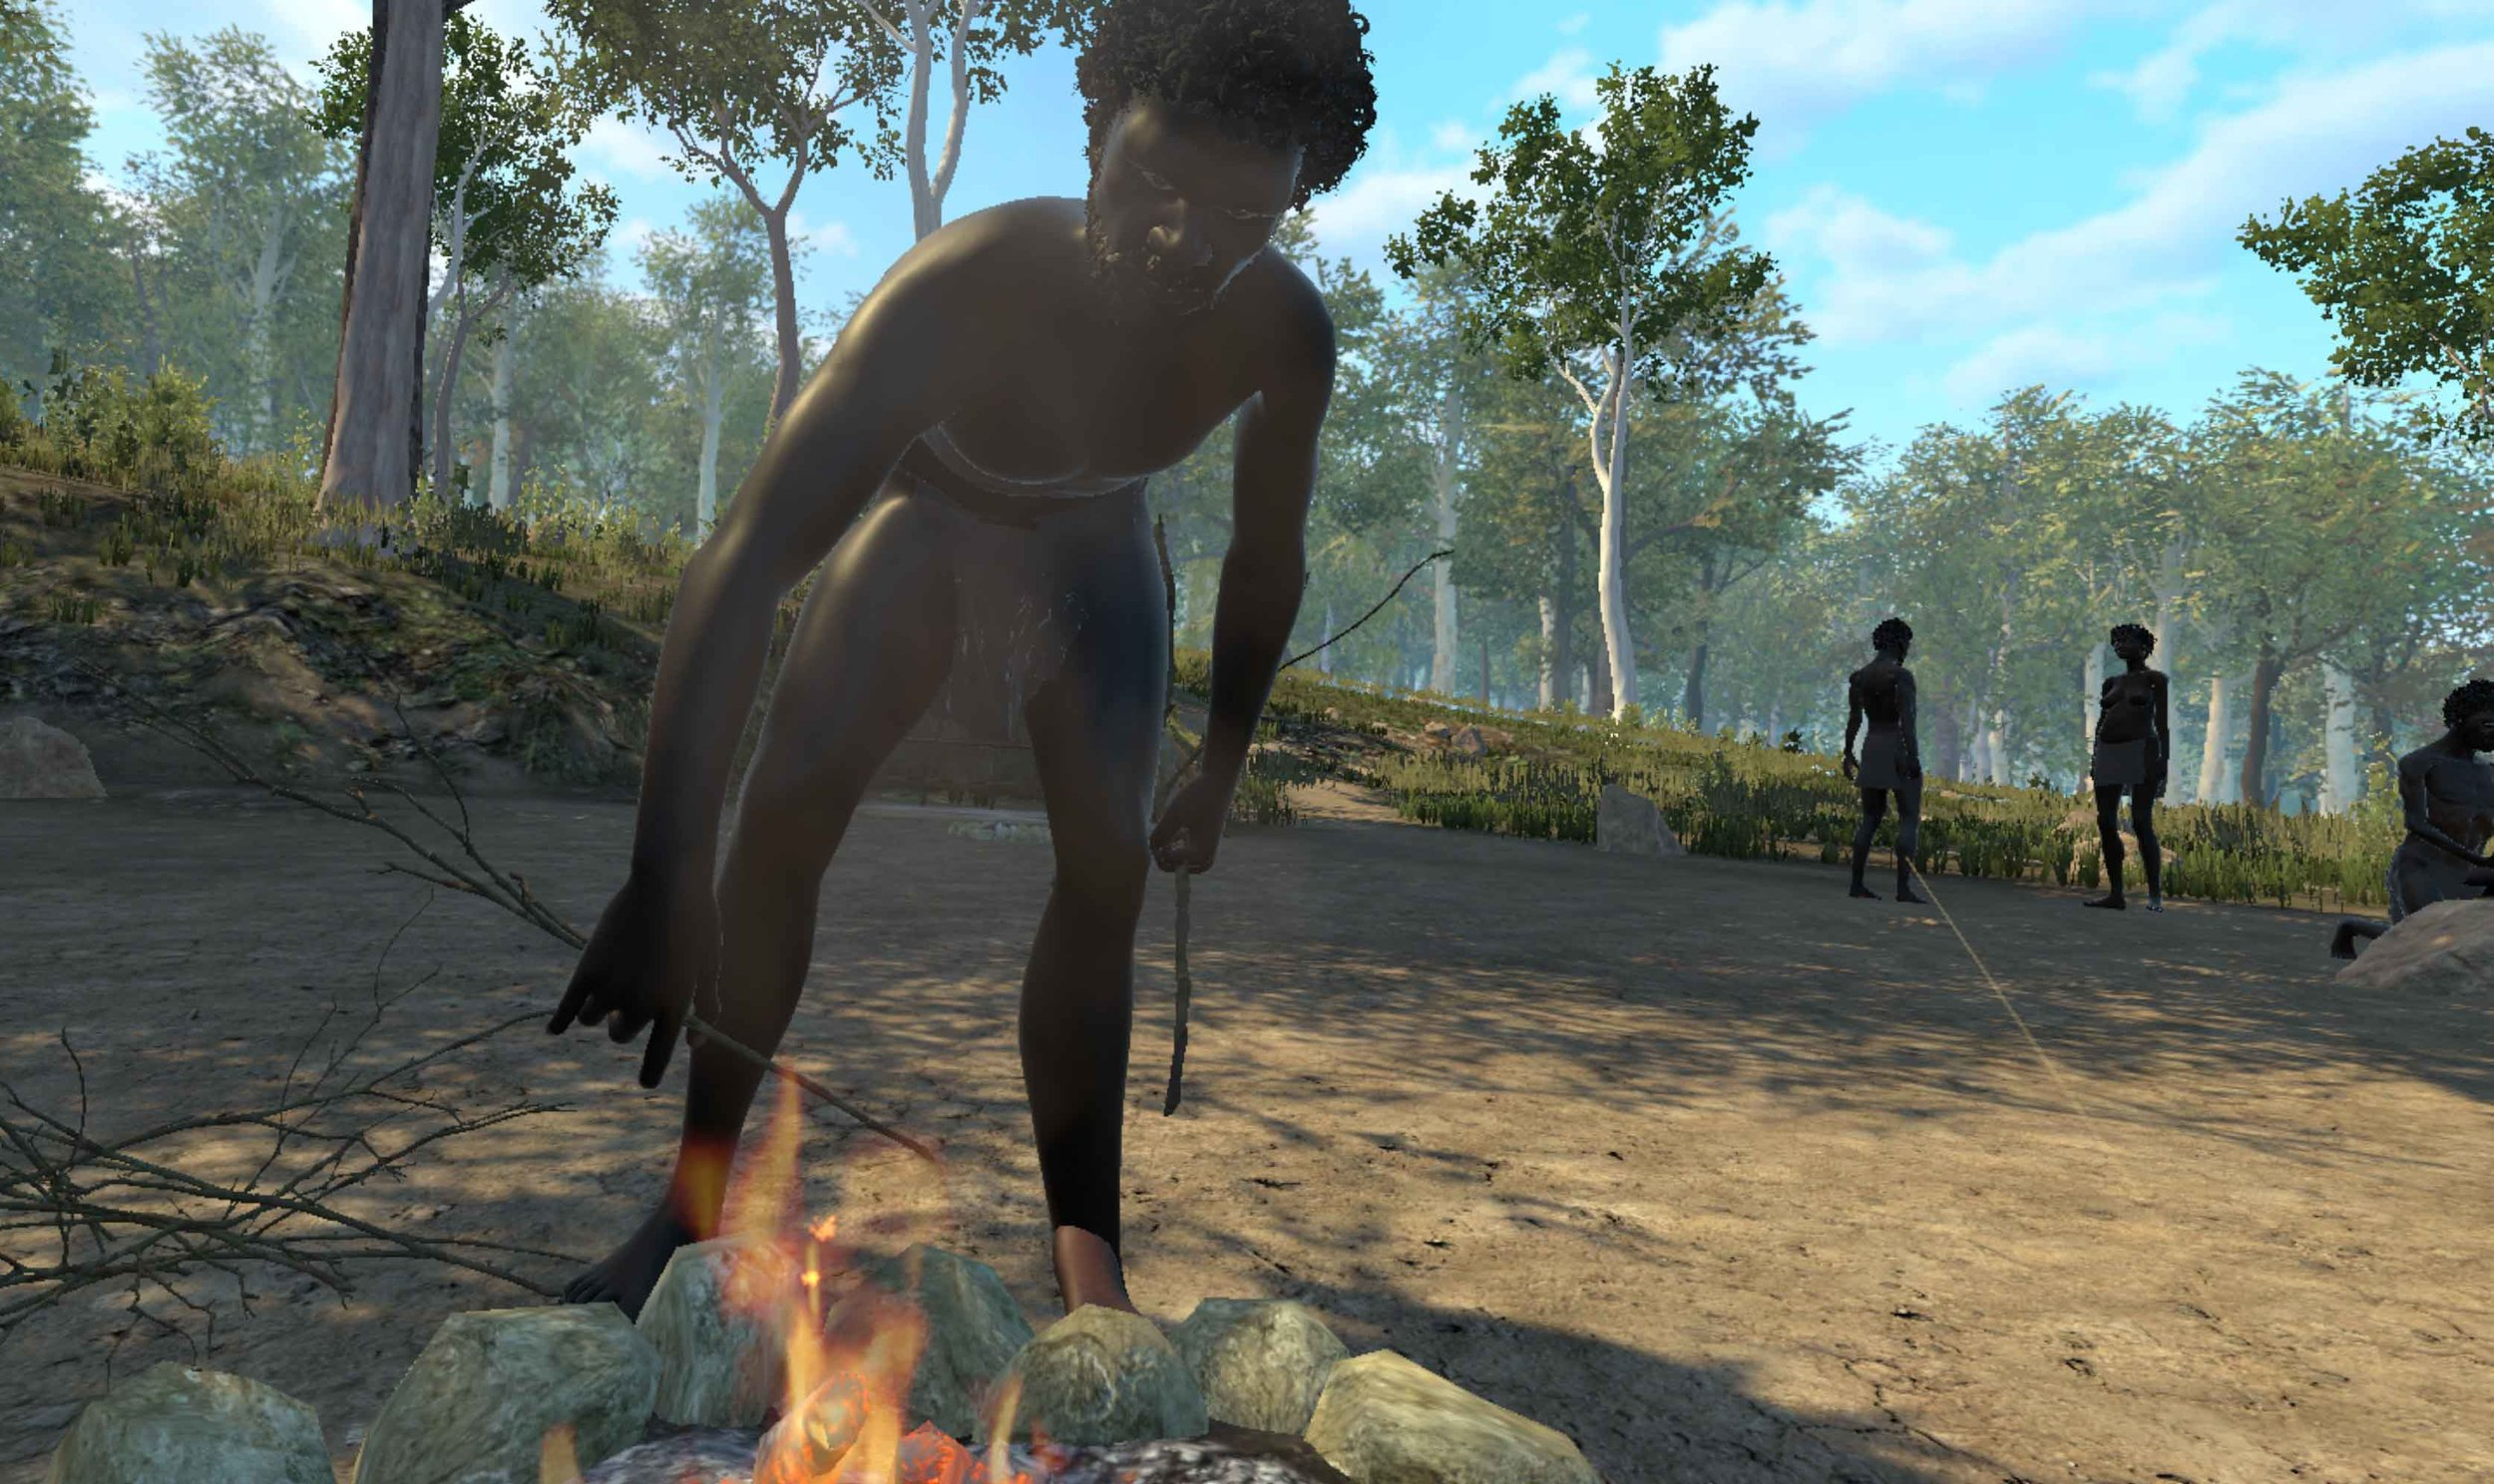 - Saturday and Sunday, 10.30am - 4.30pm The NookAges 13+No registration required.Duration: 10 minutesCome on a virtual reality adventure and be welcomed to Country. Virtual Whadjuk immerses you in Whadjuk Noongar culture and Perth landscapes as they were before European settlement.See Perth city disappear as you travel back in time. Be immersed in the beautiful natural environments along the Swan River and experience Whadjuk Noongar culture first-hand.Produced by Periscope Pictures and Bilbie Creative Labs